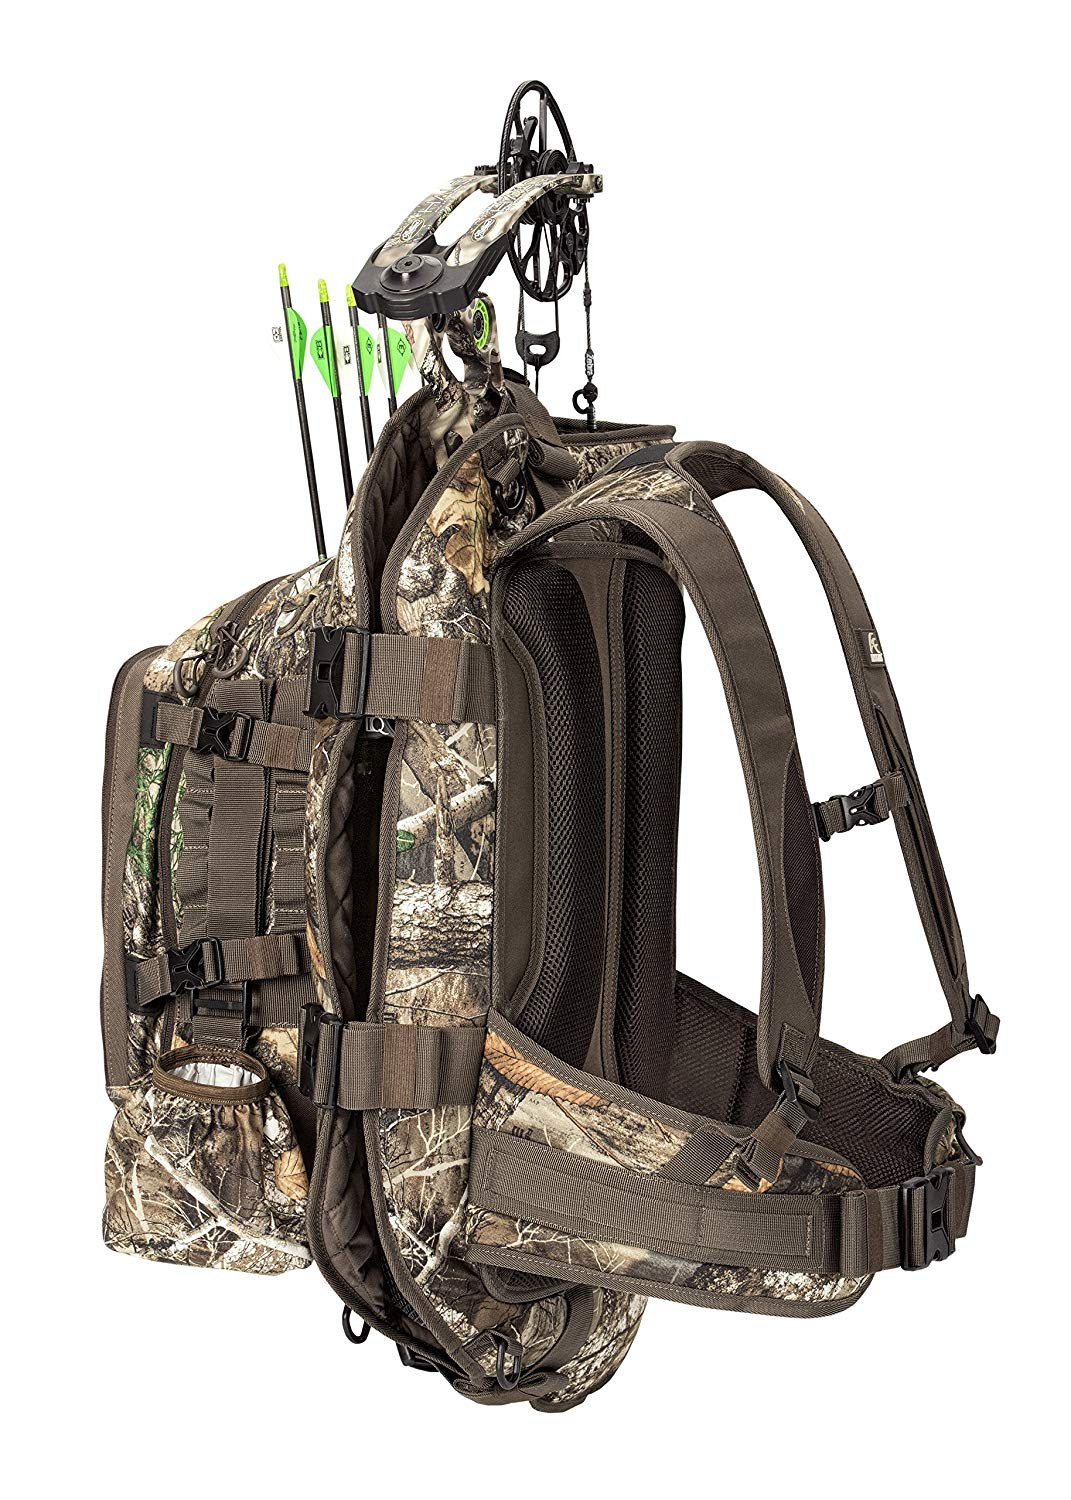 98cecba3f Get Quotations · INSIGHTS Hunting The Vision Compound Bow Carrier Pack in  Realtree Edge